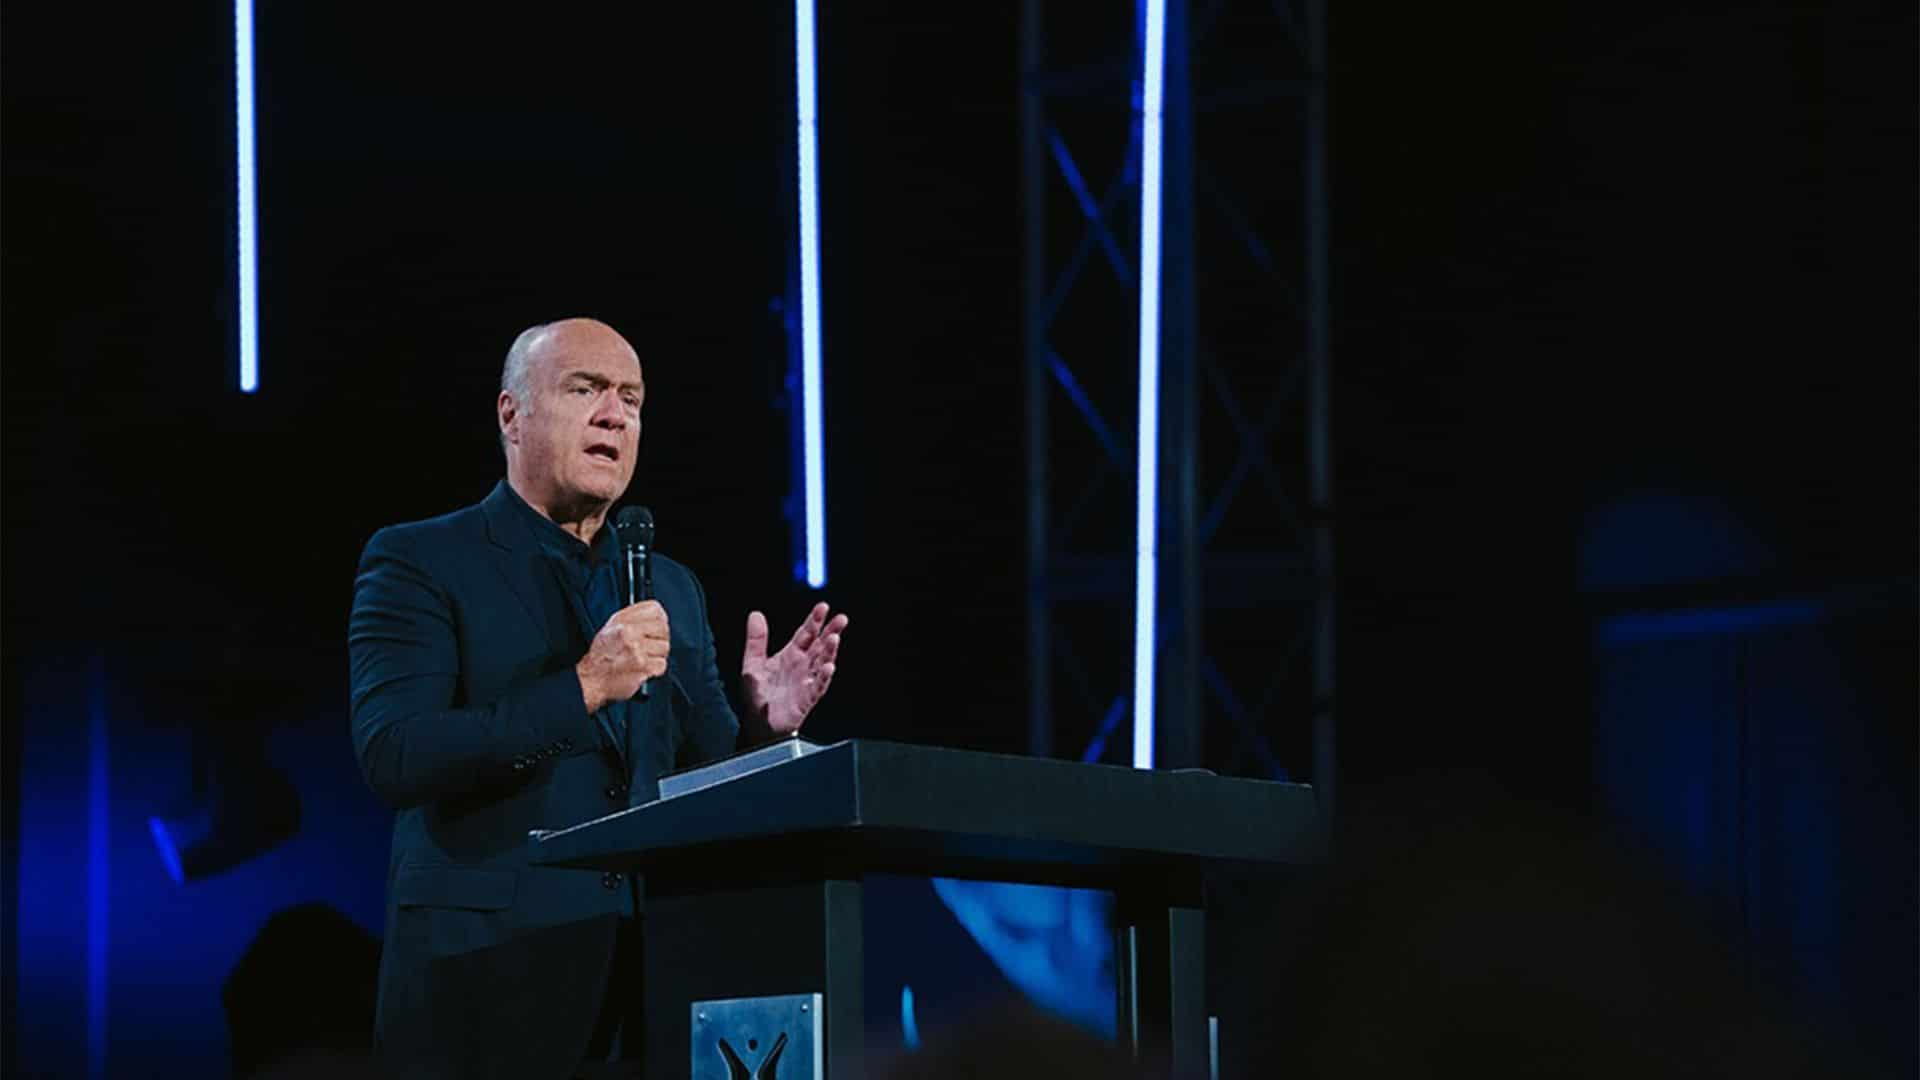 """Pastor and teacher Greg Laurie shares a message from John 21 in our Easter Sunday Message at Harvest Christian Fellowship titled, """"The Day Death Died"""""""